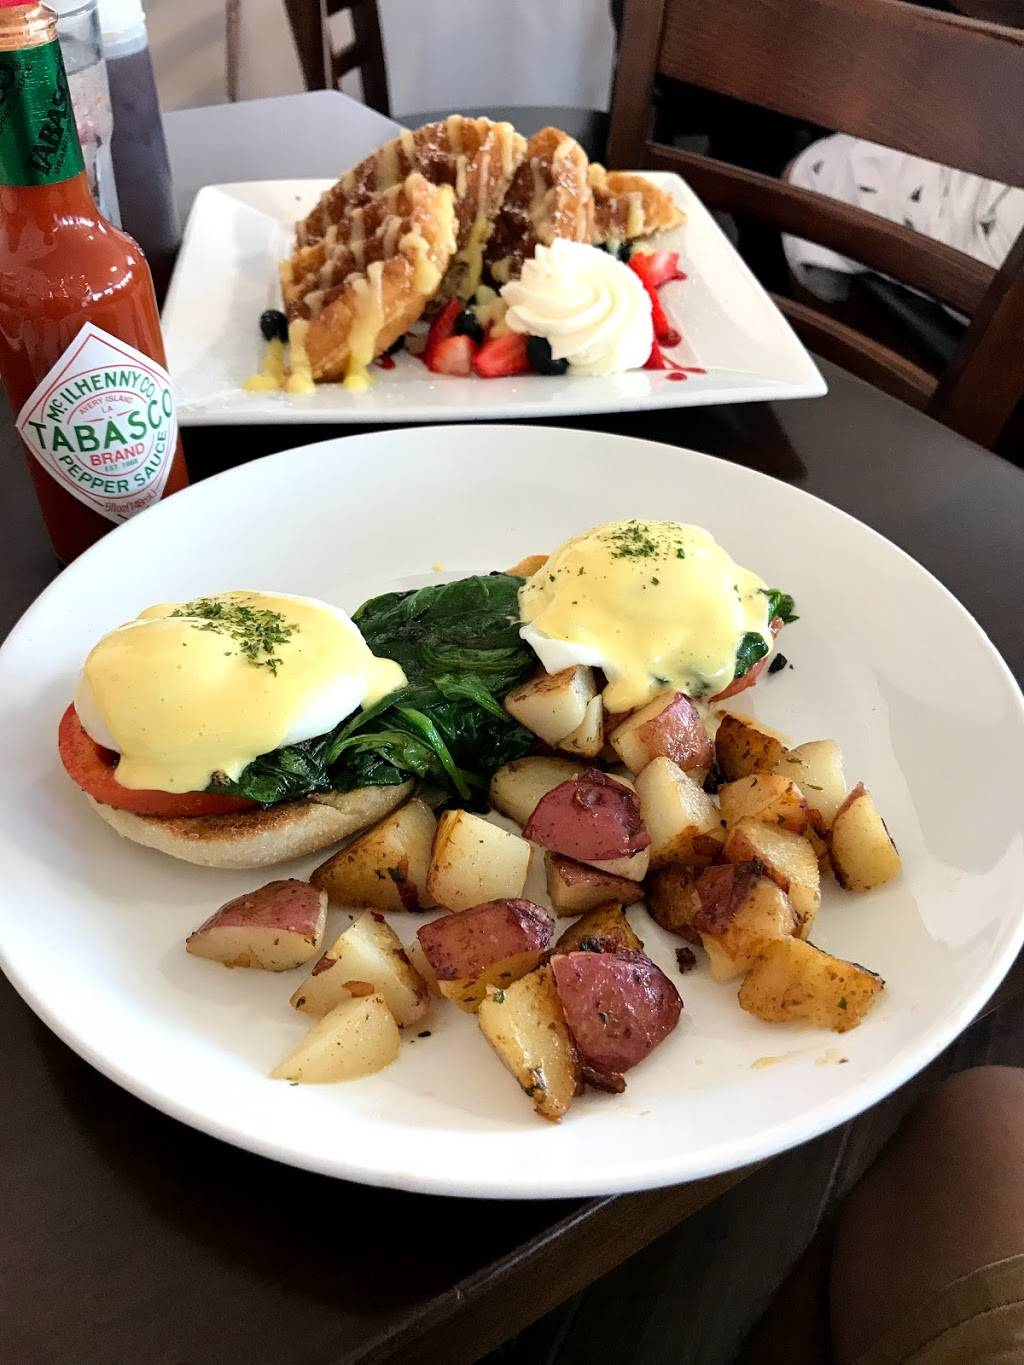 Cafe Casse Croute | cafe | 656 S Brookhurst St, Anaheim, CA 92804, USA | 7147748013 OR +1 714-774-8013